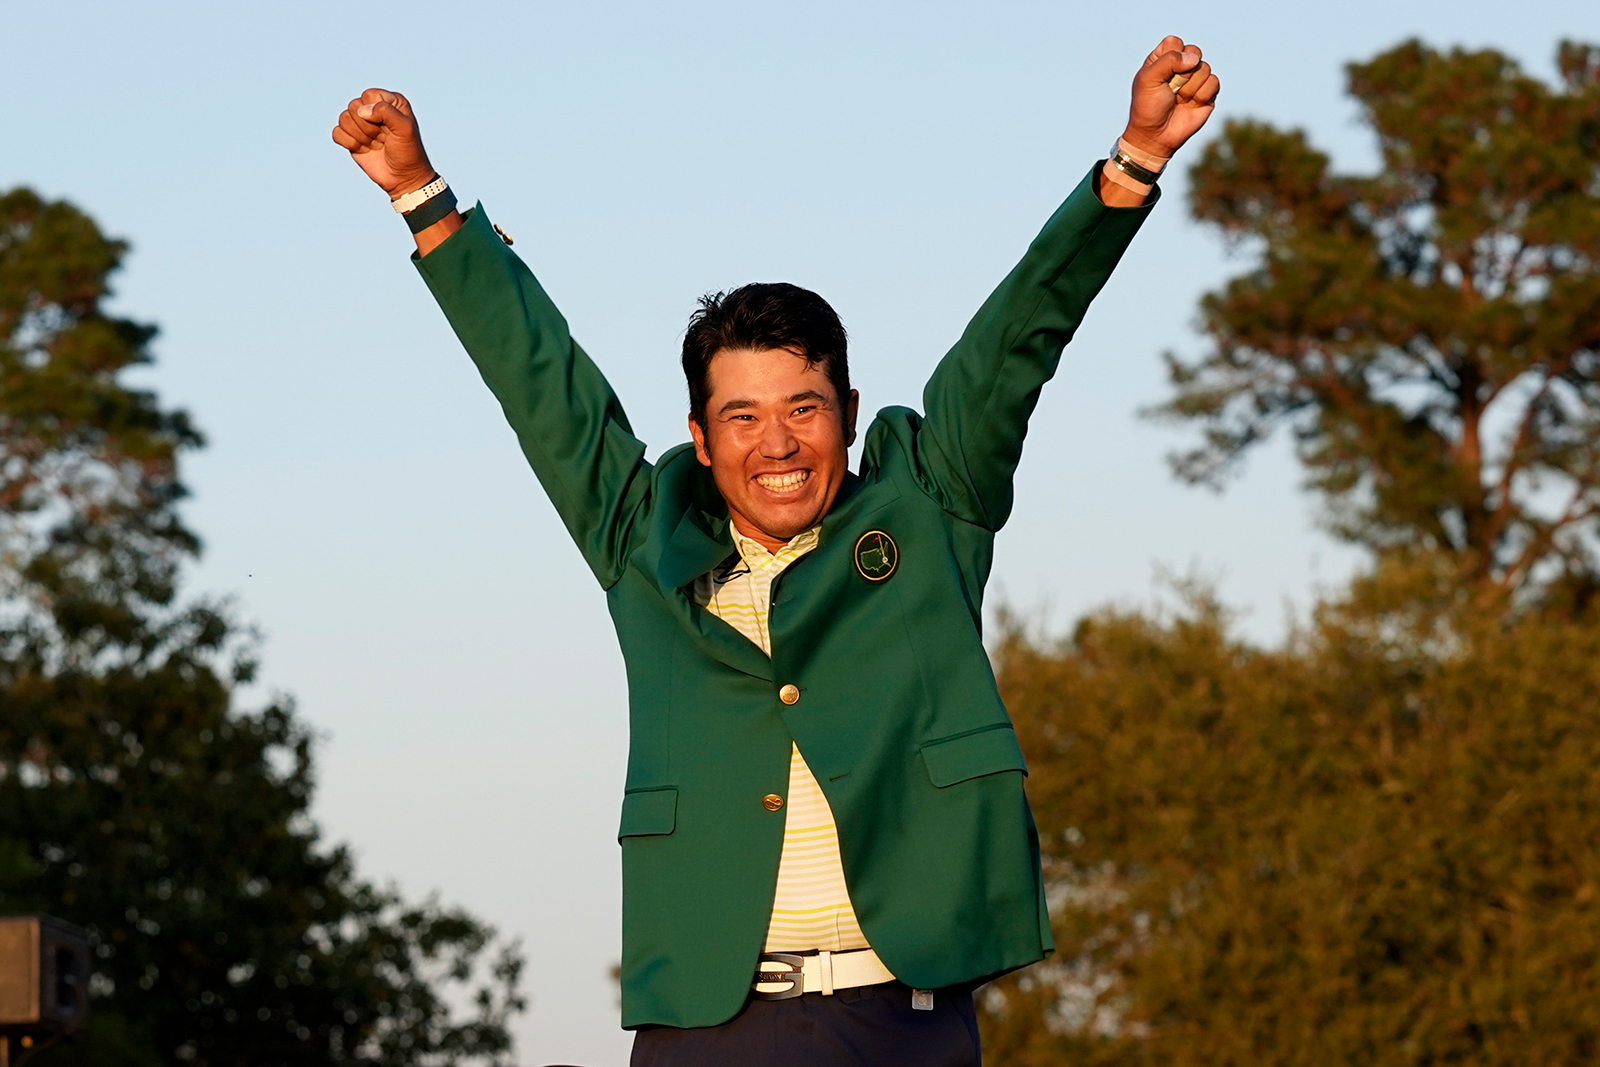 Hideki Matsuyama wins the 2021 Masters, becoming first Japanese man to win golf major